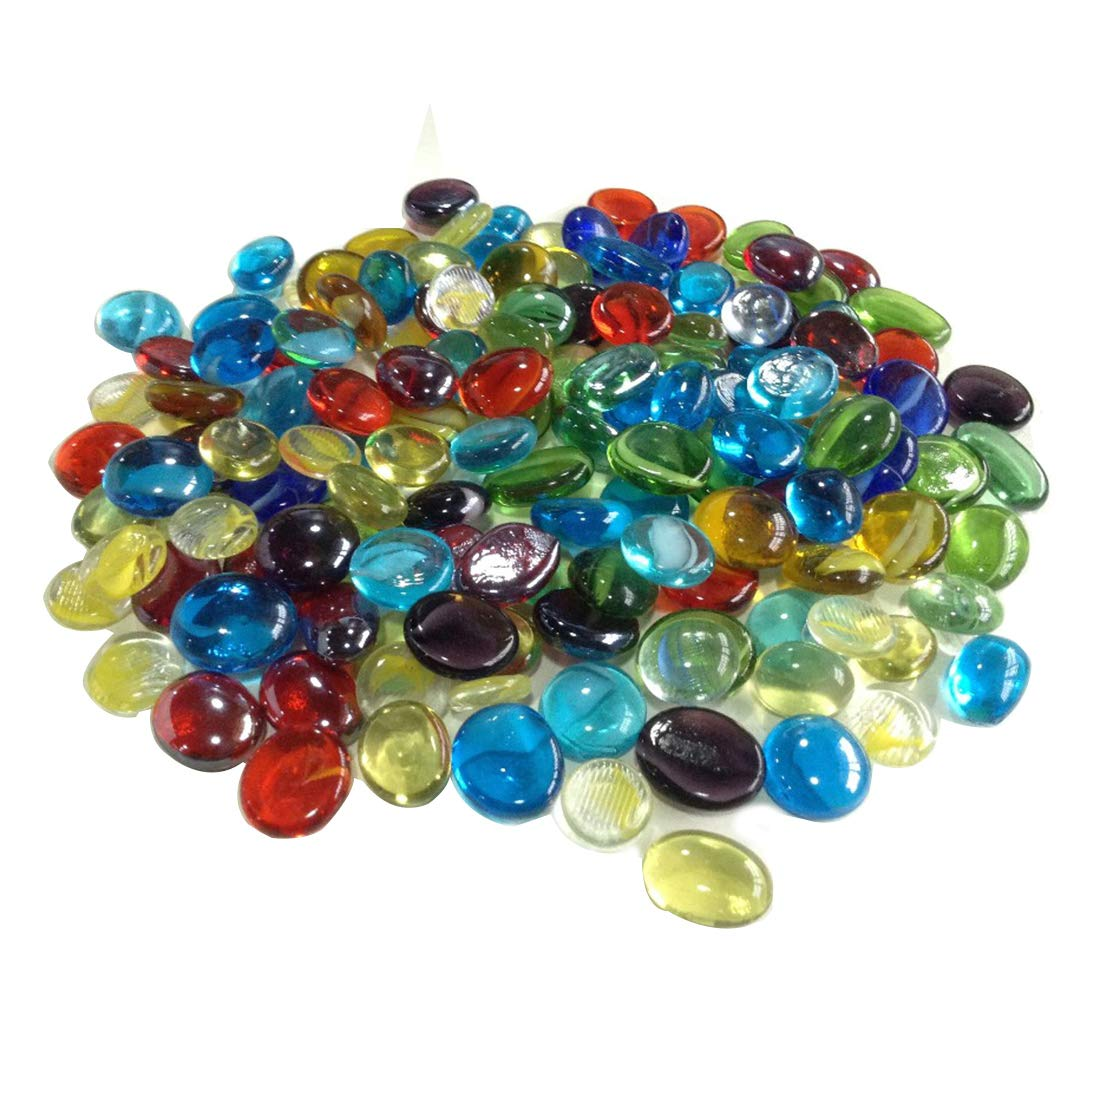 ECYC® 50pcs/lot Mulicolor Stone Glass Goldfish Bowl Flat Beads for Fish Tank Flowerpot Decoration,14mm TM